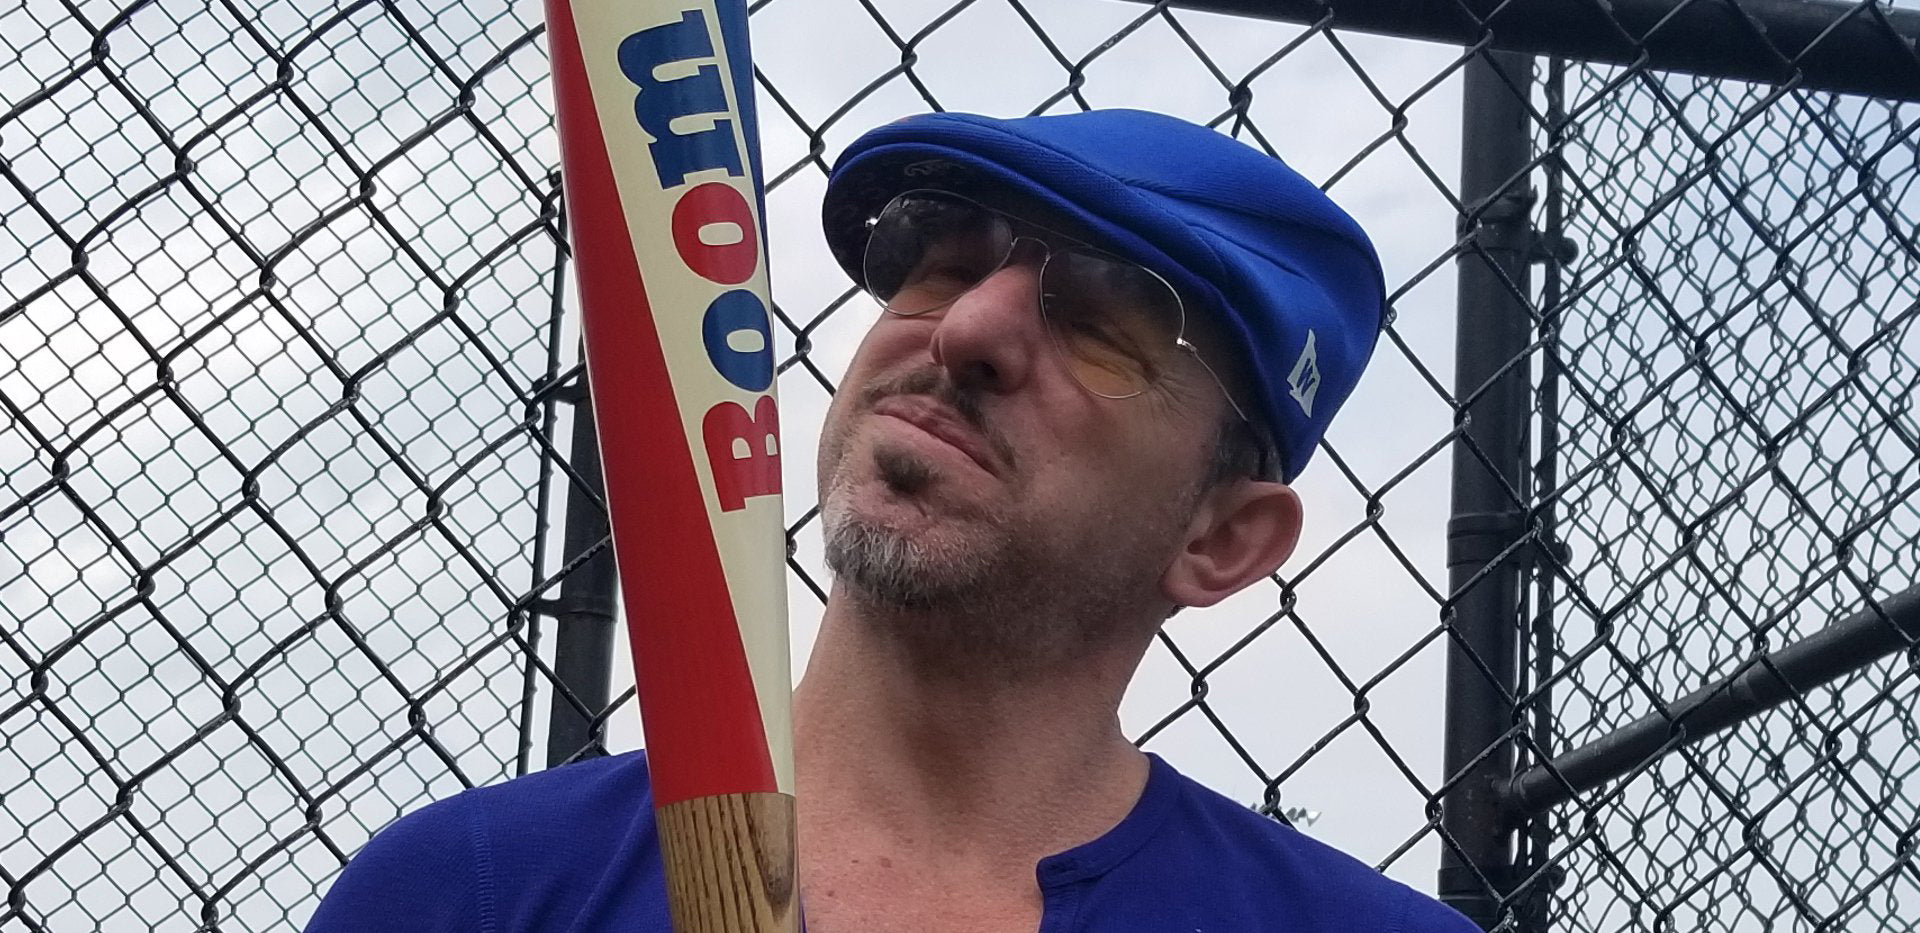 Artist Matthew Lee Rosen and his boom stick baseball bat